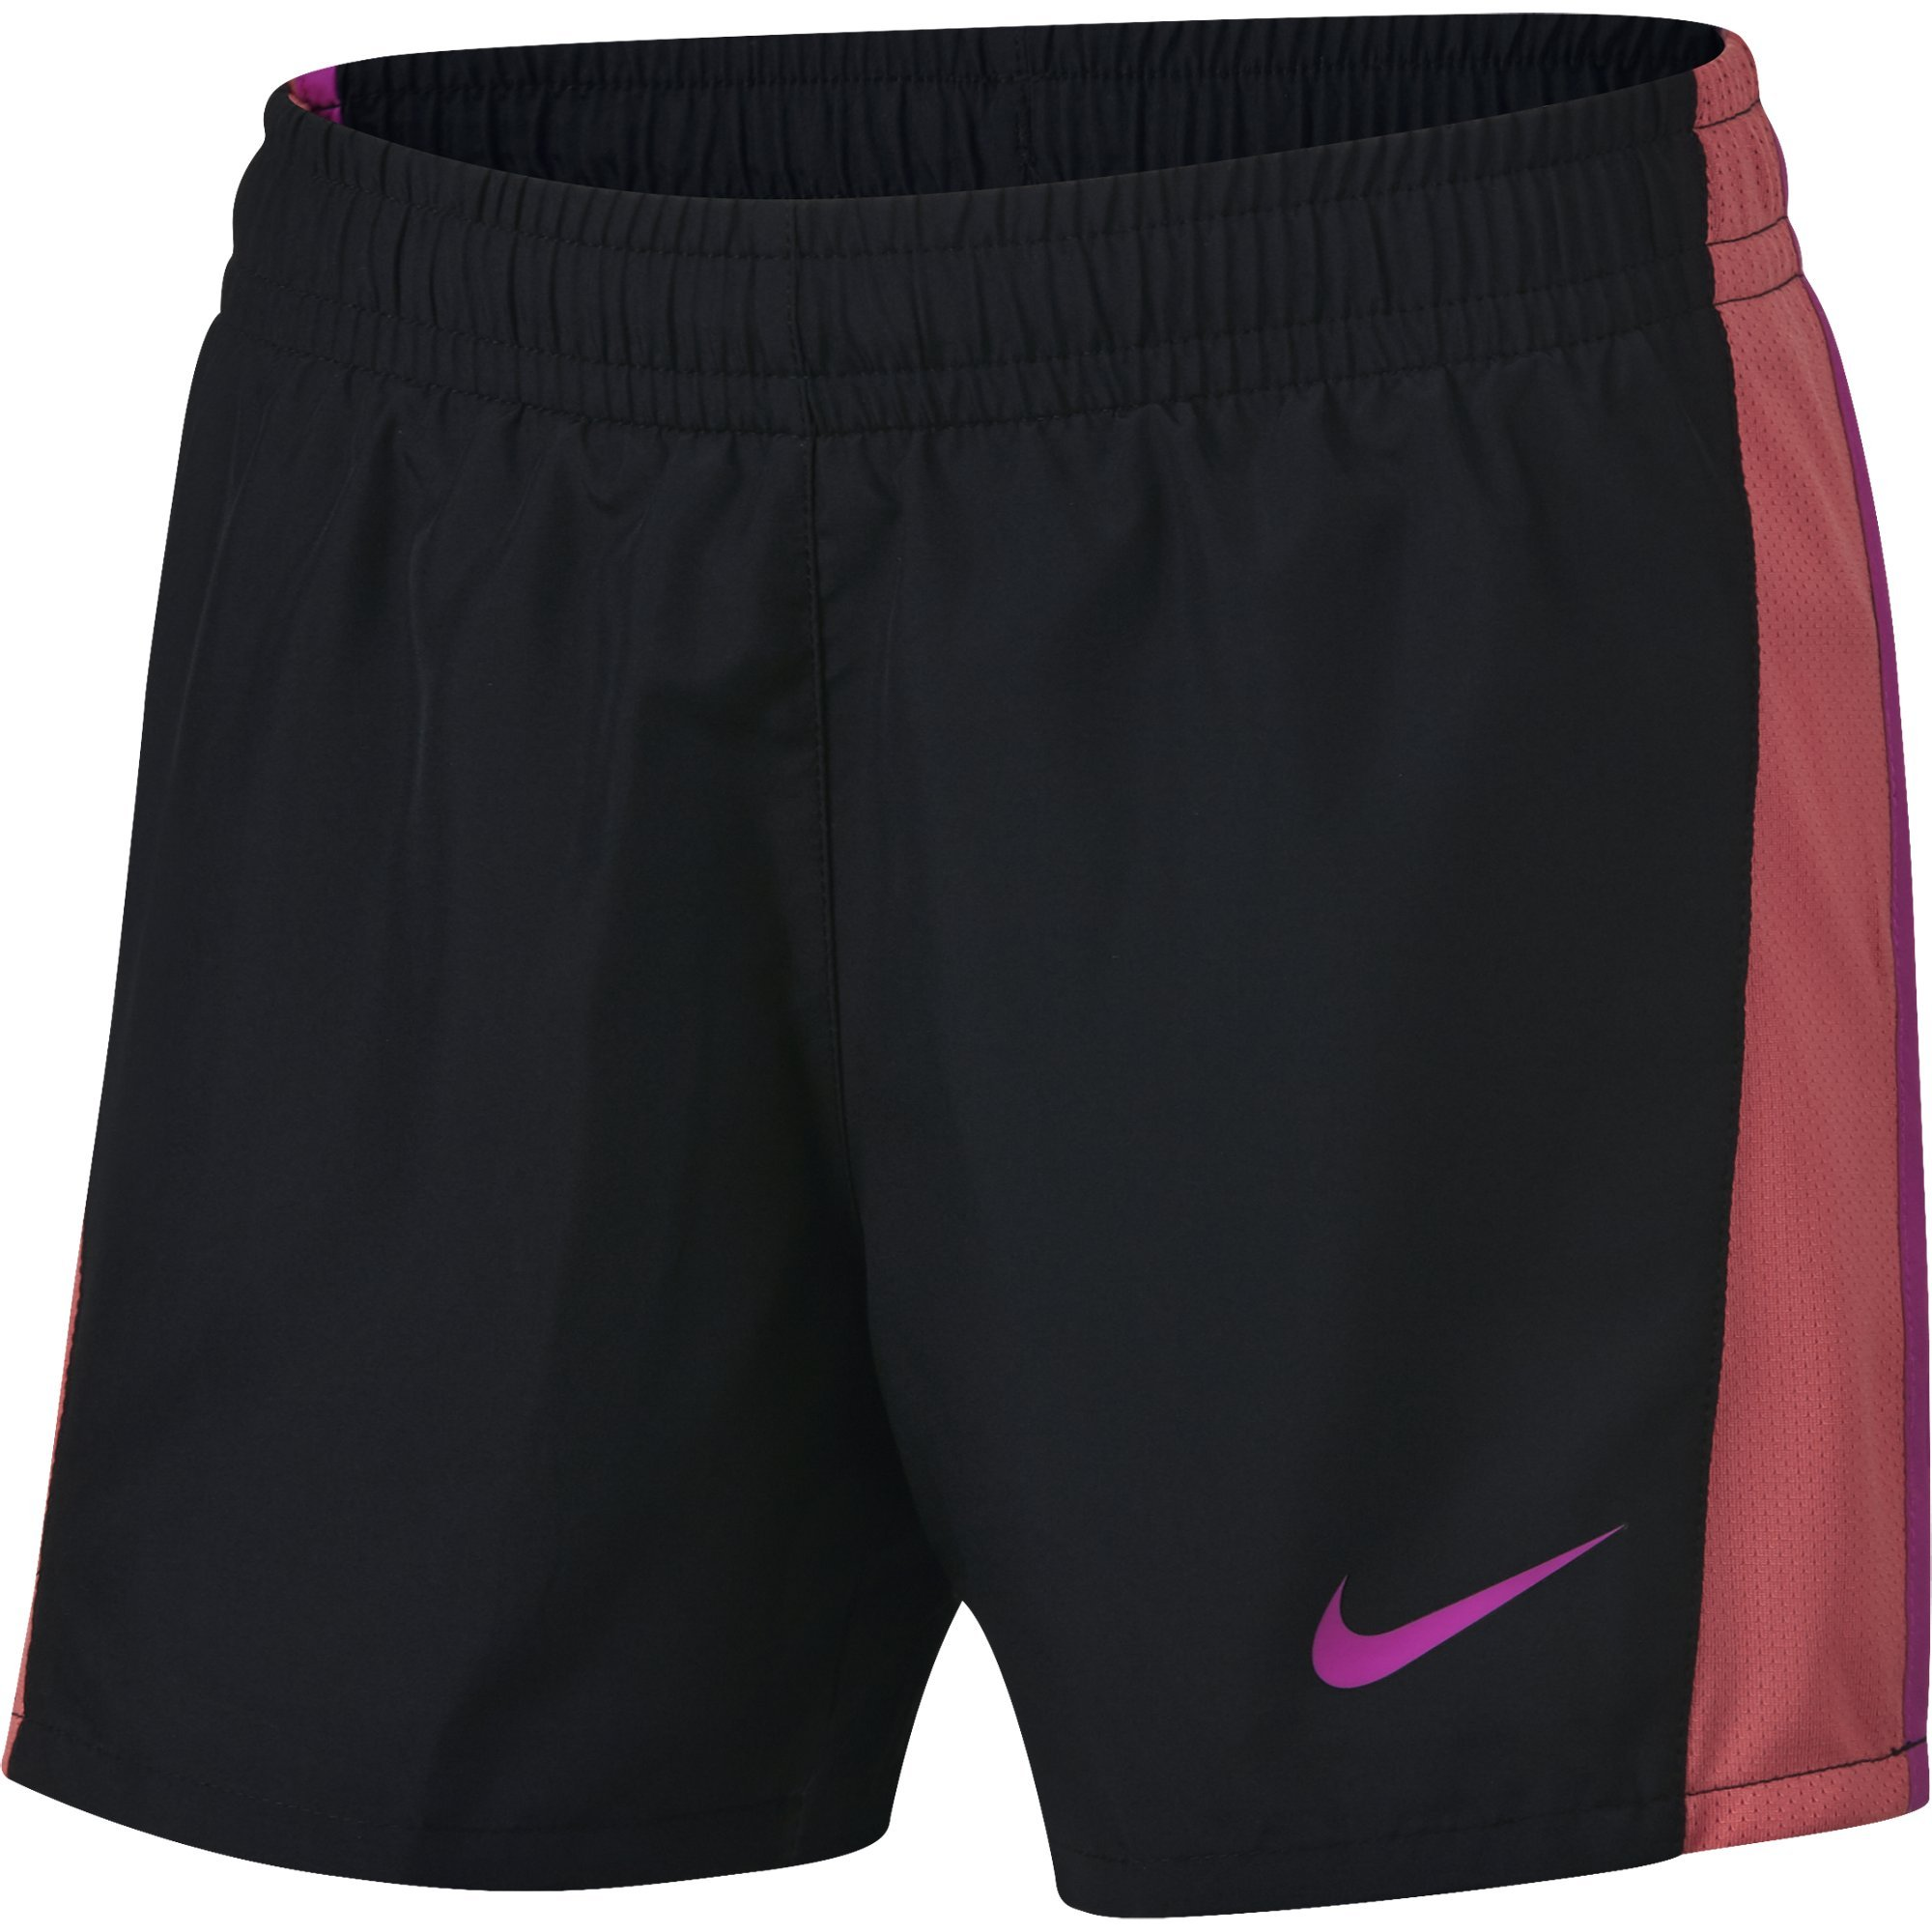 NIKE Girls' Dry 10K Running Shorts, Black/Sea Coral/Hyper Magenta, X-Large by Nike